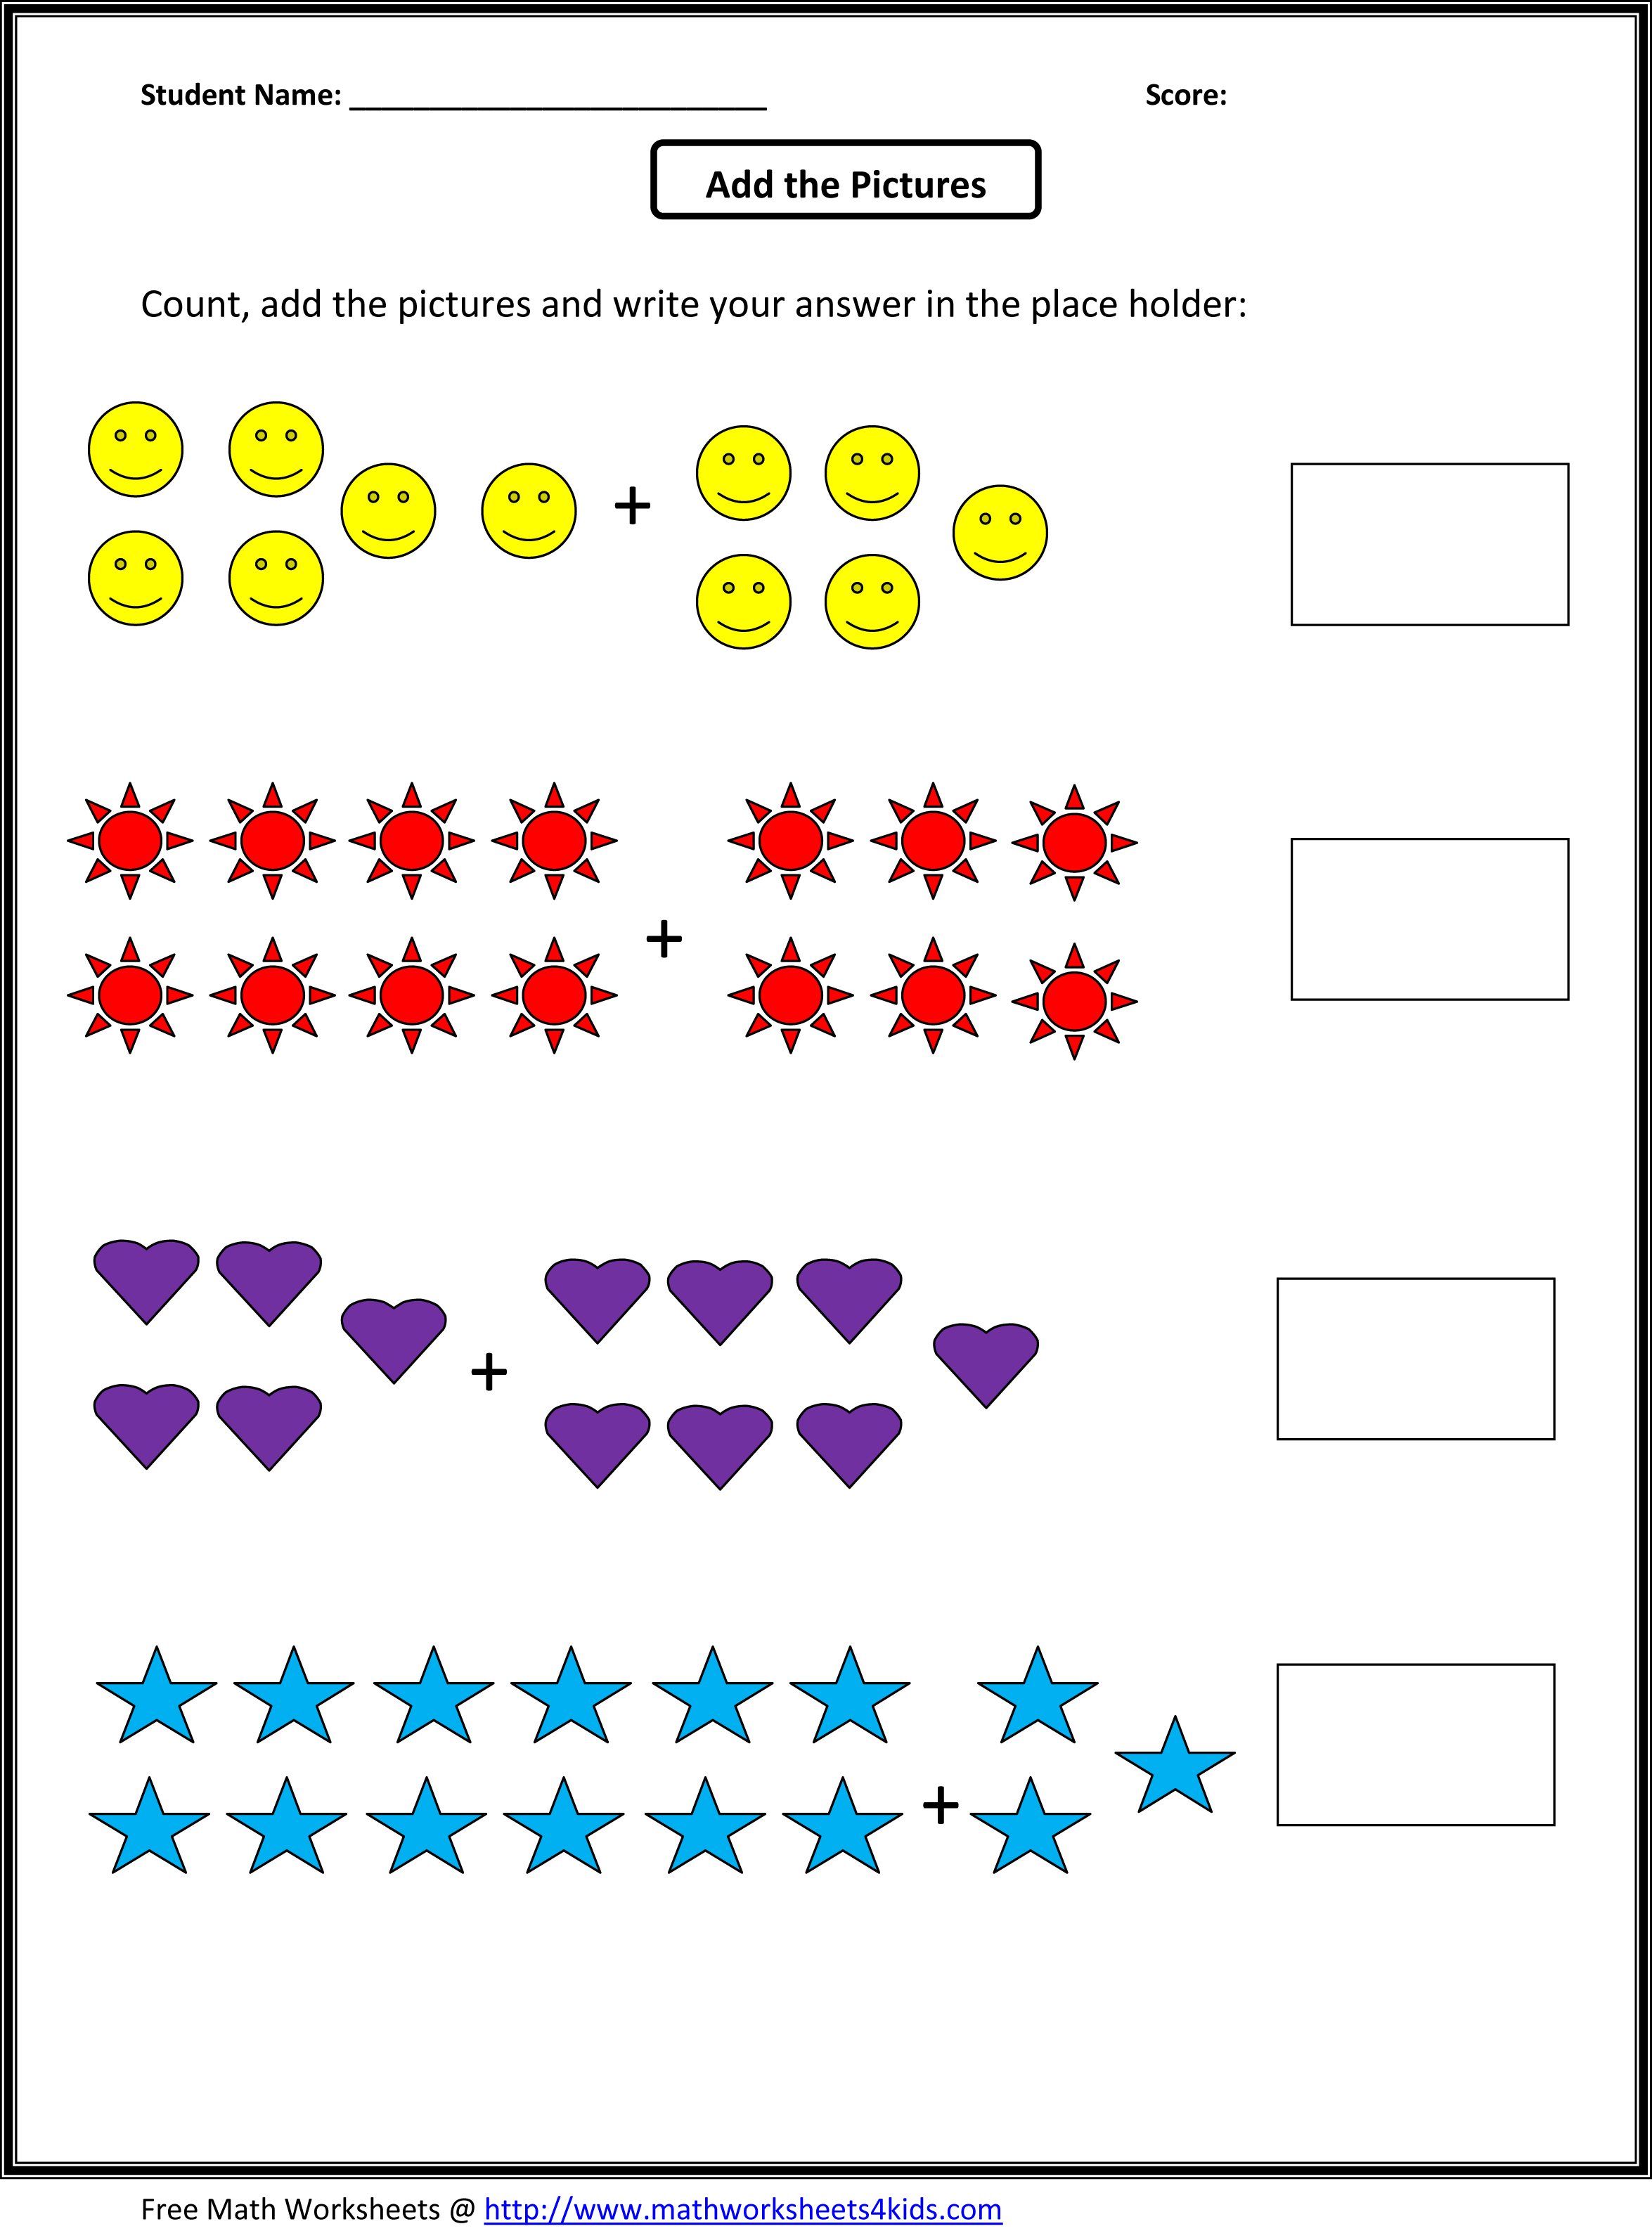 Proatmealus  Stunning Grade  Maths Worksheet  Reocurent With Goodlooking Math Worksheets For St Grade Free  Reocurent With Agreeable St Grade Adjectives Worksheet Also Letter J Tracing Worksheet In Addition Reading  Worksheets And Preschool English Worksheets Free Printable As Well As  Digit By  Digit Multiplication Word Problems Worksheets Additionally Comprehension Worksheets For Grade  From Reocurentcom With Proatmealus  Goodlooking Grade  Maths Worksheet  Reocurent With Agreeable Math Worksheets For St Grade Free  Reocurent And Stunning St Grade Adjectives Worksheet Also Letter J Tracing Worksheet In Addition Reading  Worksheets From Reocurentcom